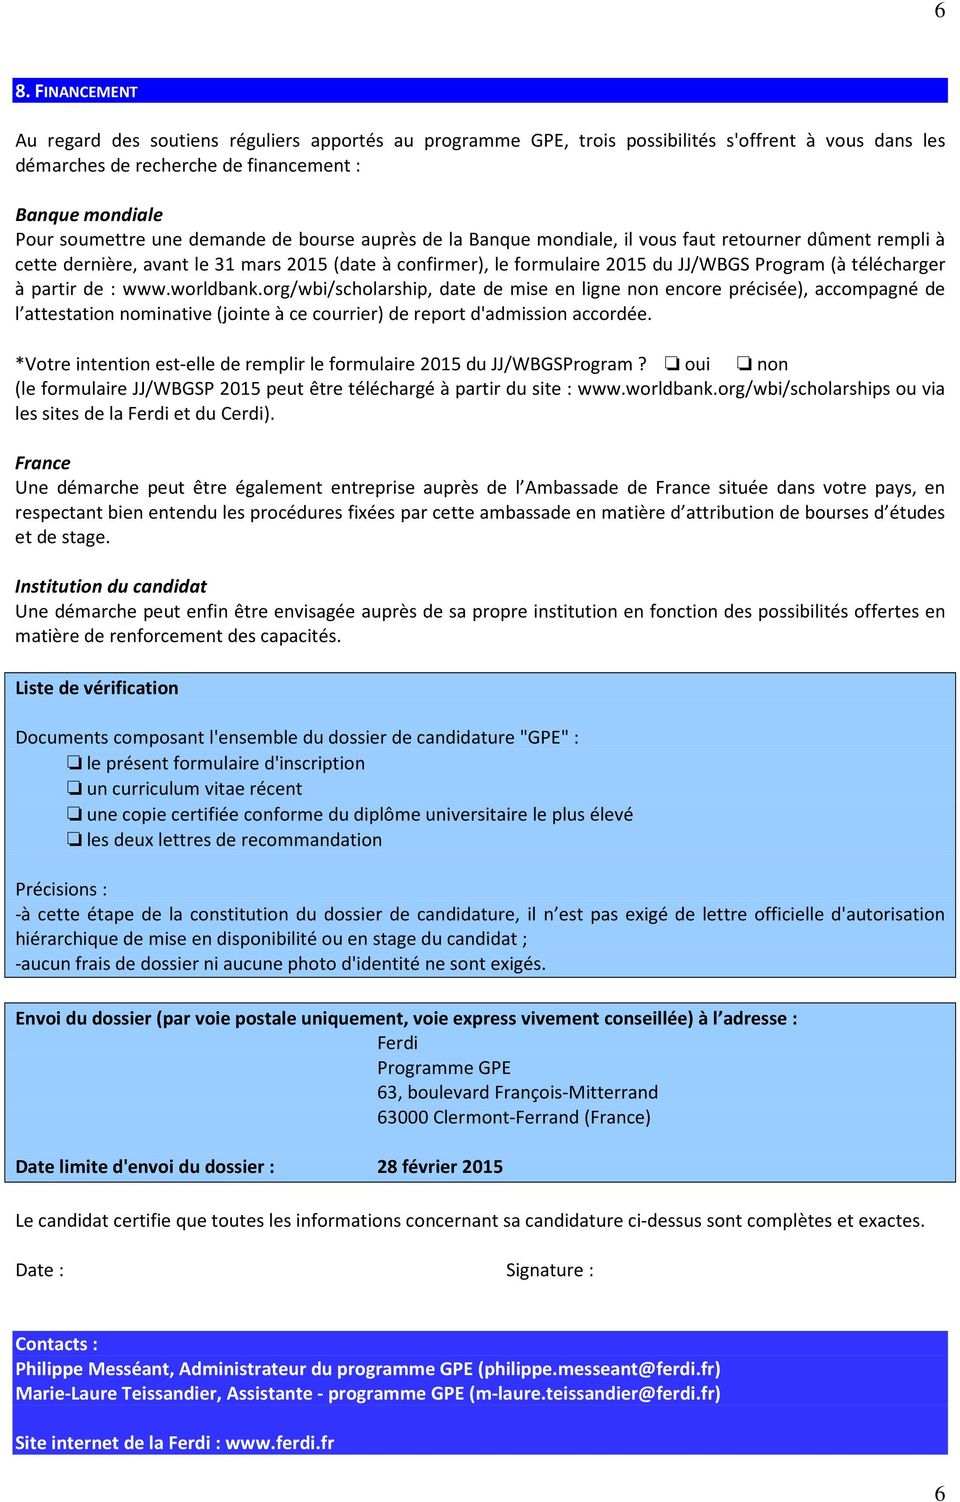 partir de : www.worldbank.org/wbi/scholarship, date de mise en ligne non encore précisée), accompagné de l attestation nominative (jointe à ce courrier) de report d'admission accordée.